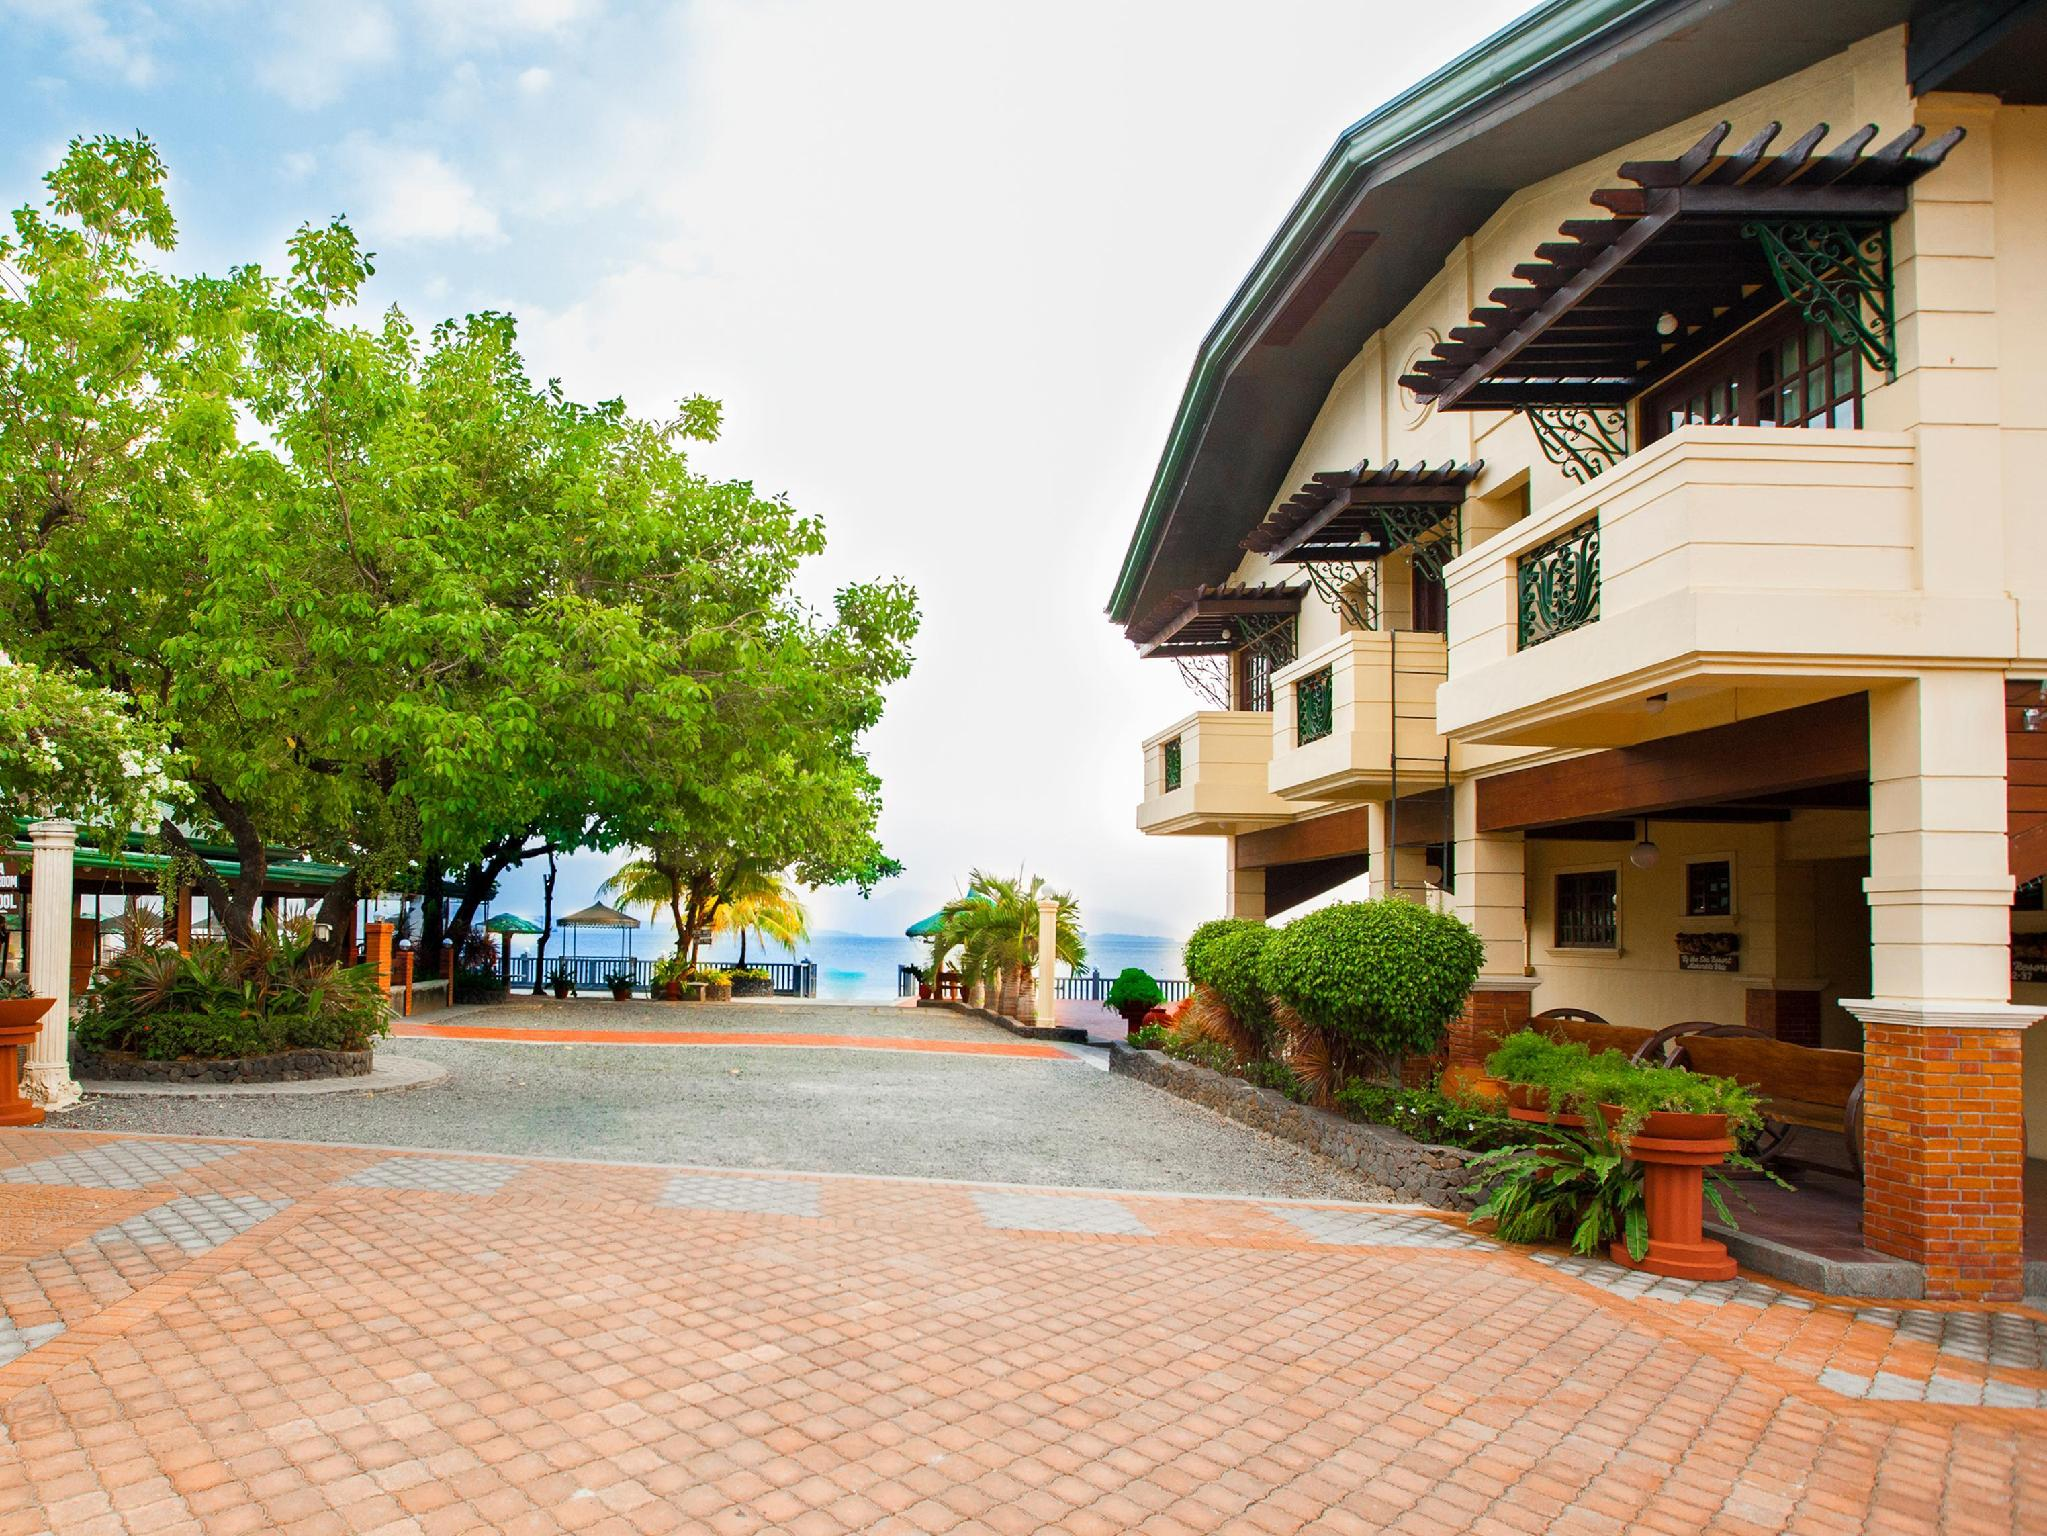 zambales beach resort with swimming pool by the sea resort hotel subic zambales philippines